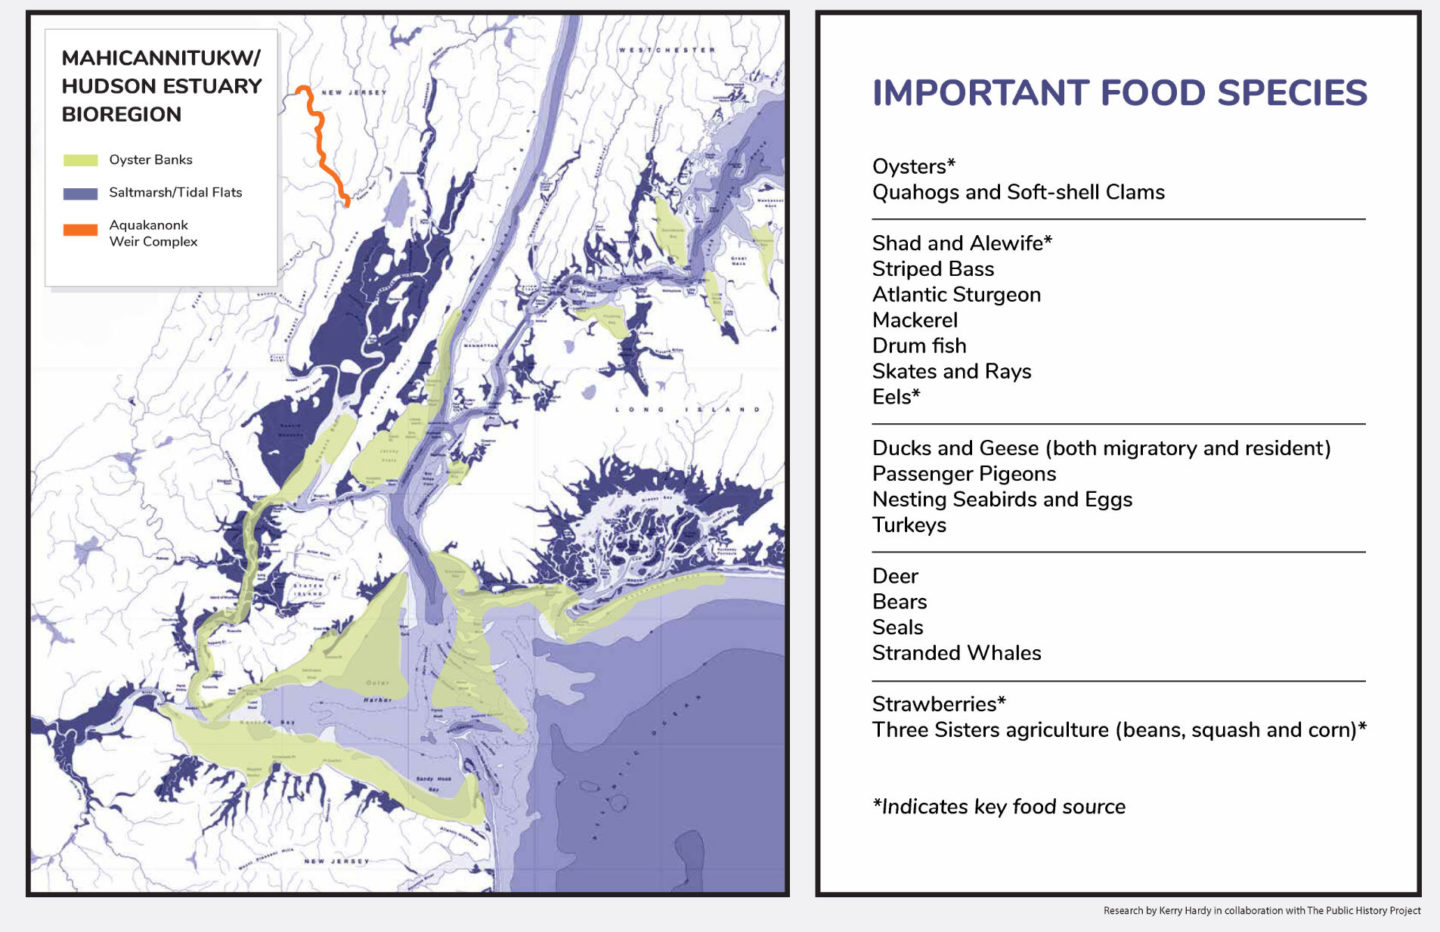 Mahicannituckw/Hudson Estuary Bioregion Important Food Species map and list